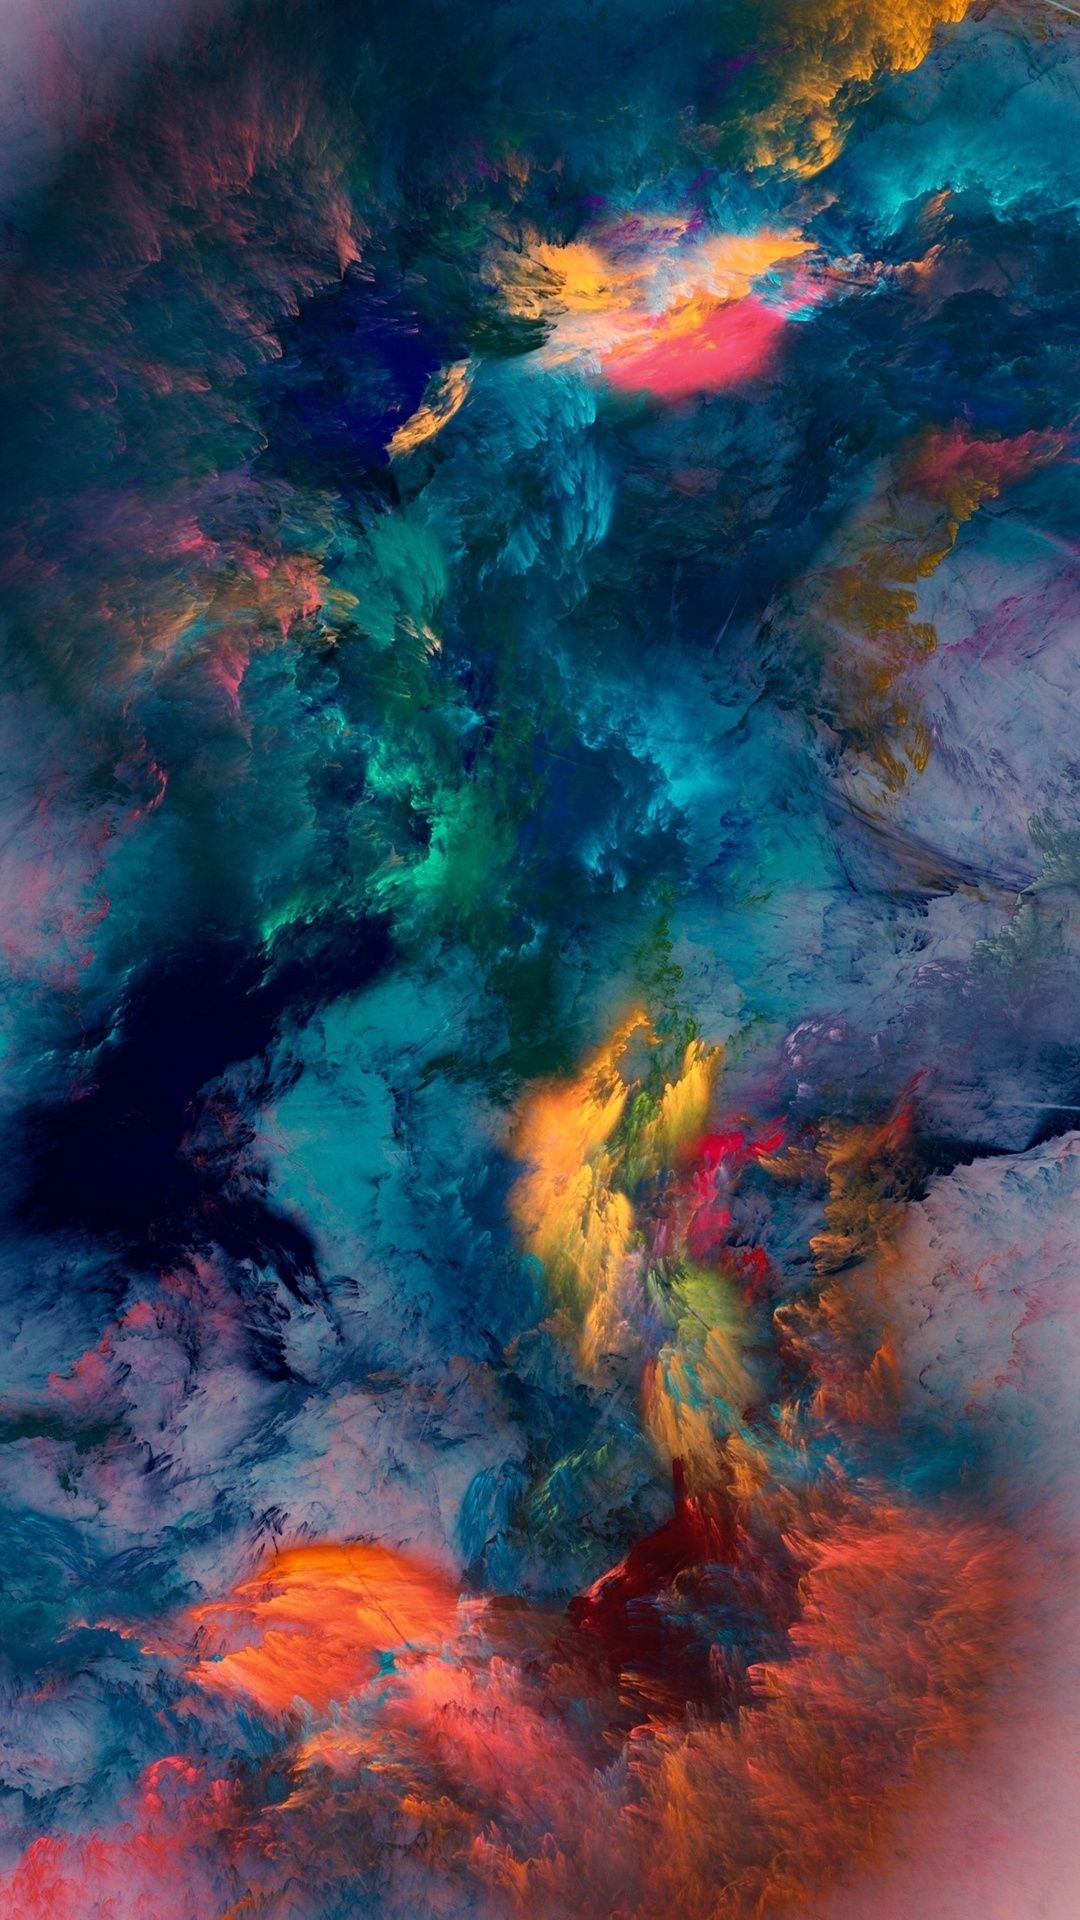 Colour Storm Wallpaper  Digital art  Storm wallpaper, Iphone wallpaper, Mobile wallpaper